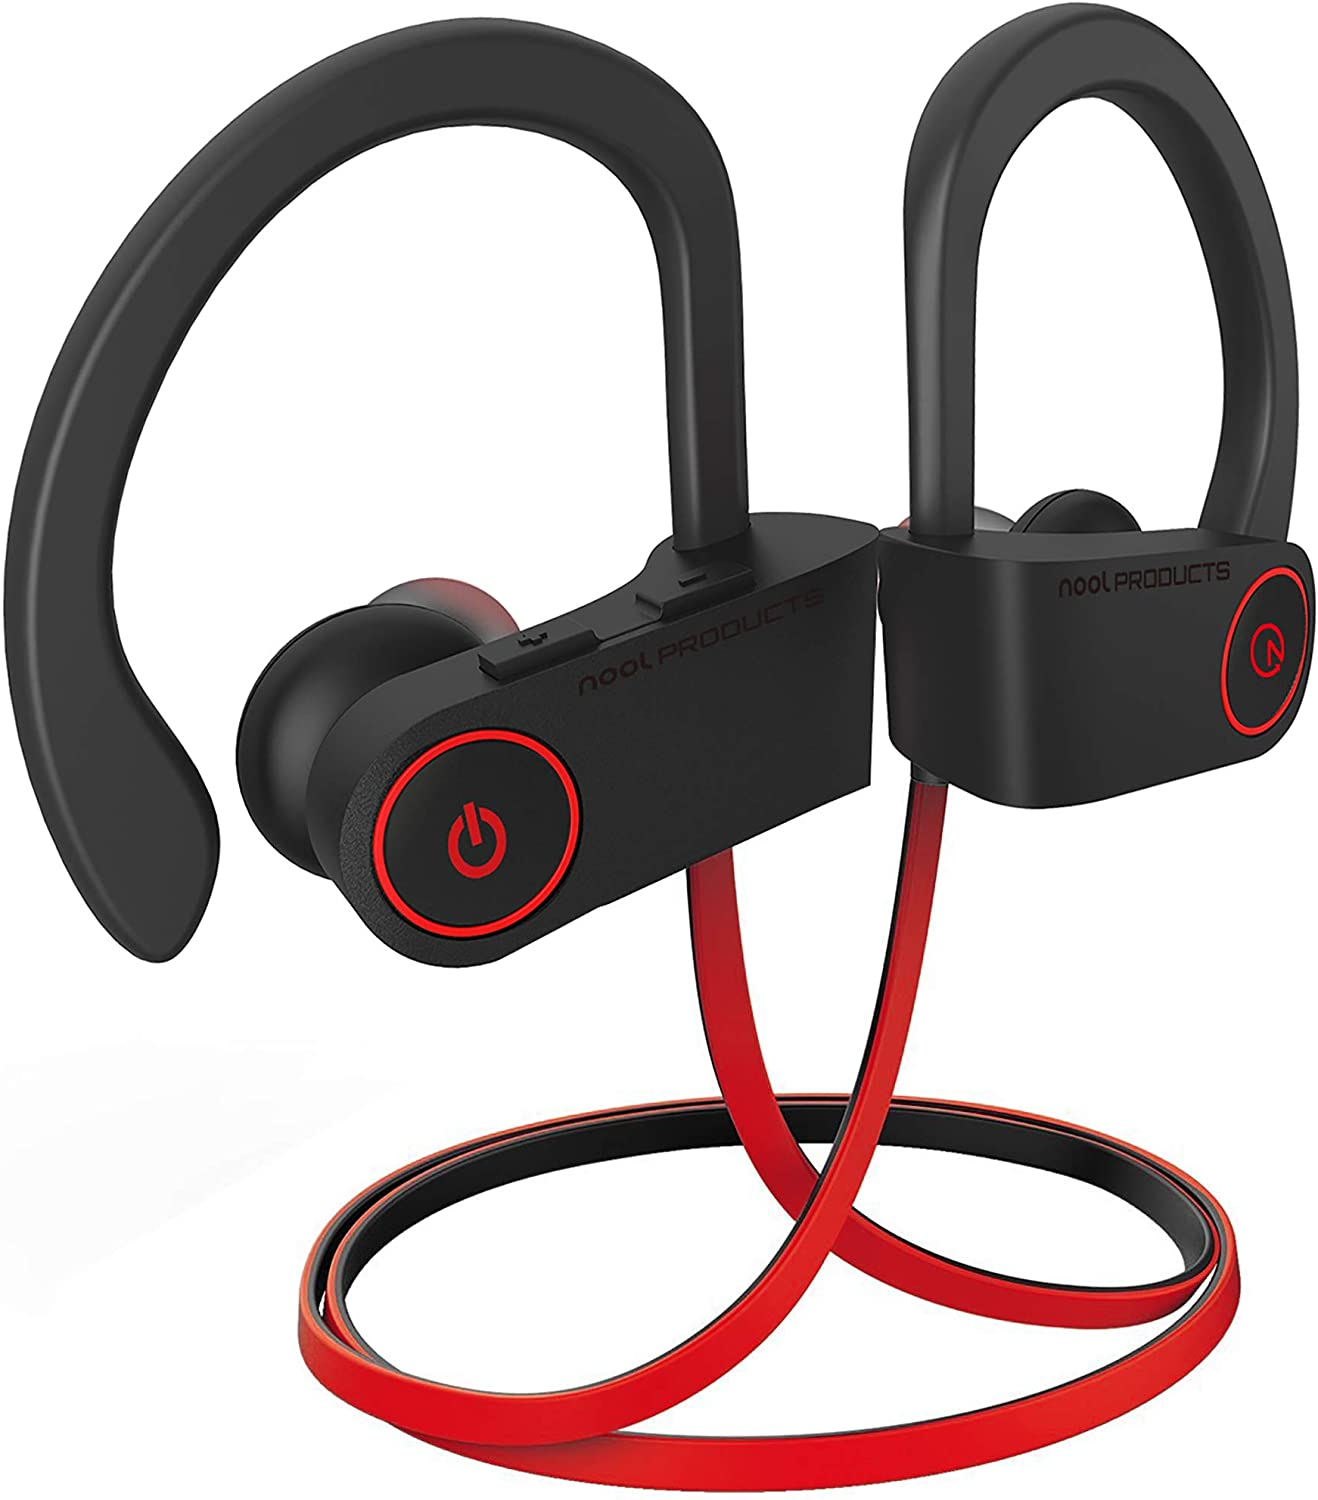 Noot Products NP 11 Wireless Bluetooth Earbuds Mountain Biking Headphones The Look of This headphones is beautiful Than other headphones